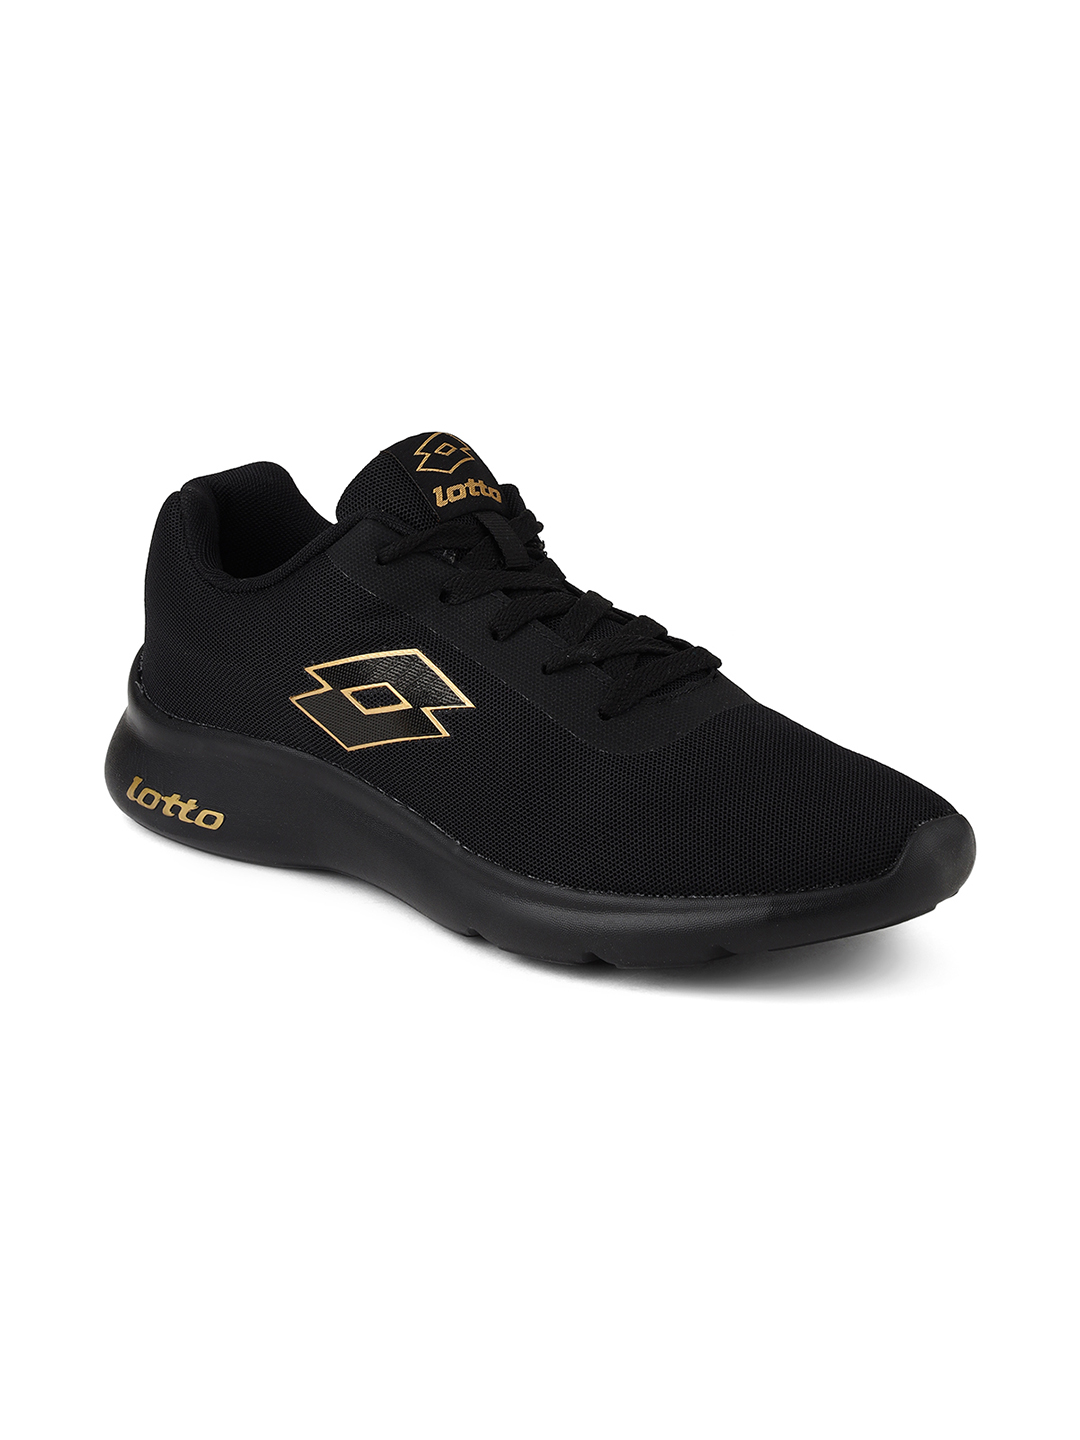 Lotto | Lotto Men's Victor Amf Black Running Shoes